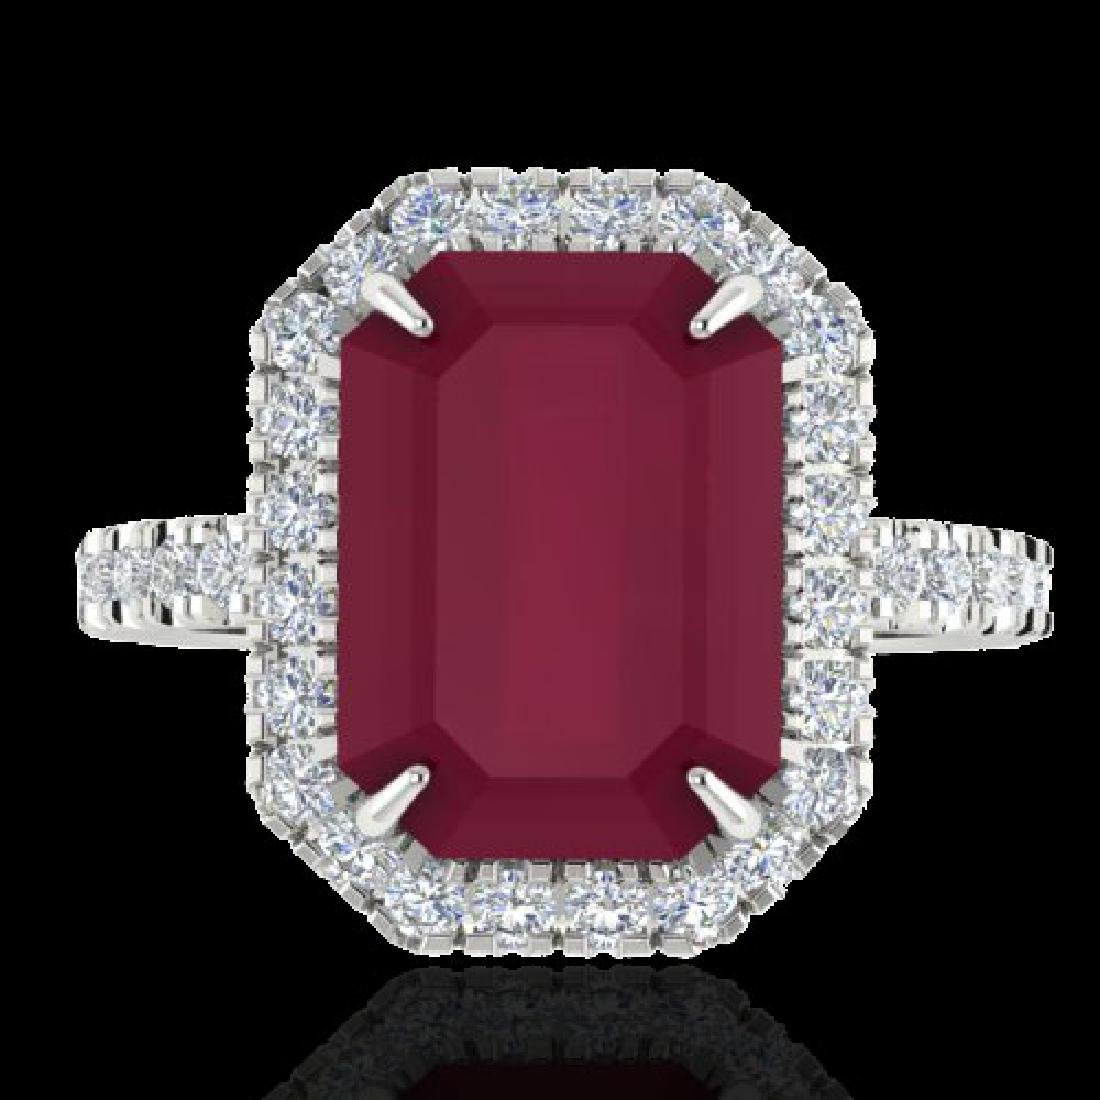 5.33 CTW Ruby And Micro Pave VS/SI Diamond Halo Ring